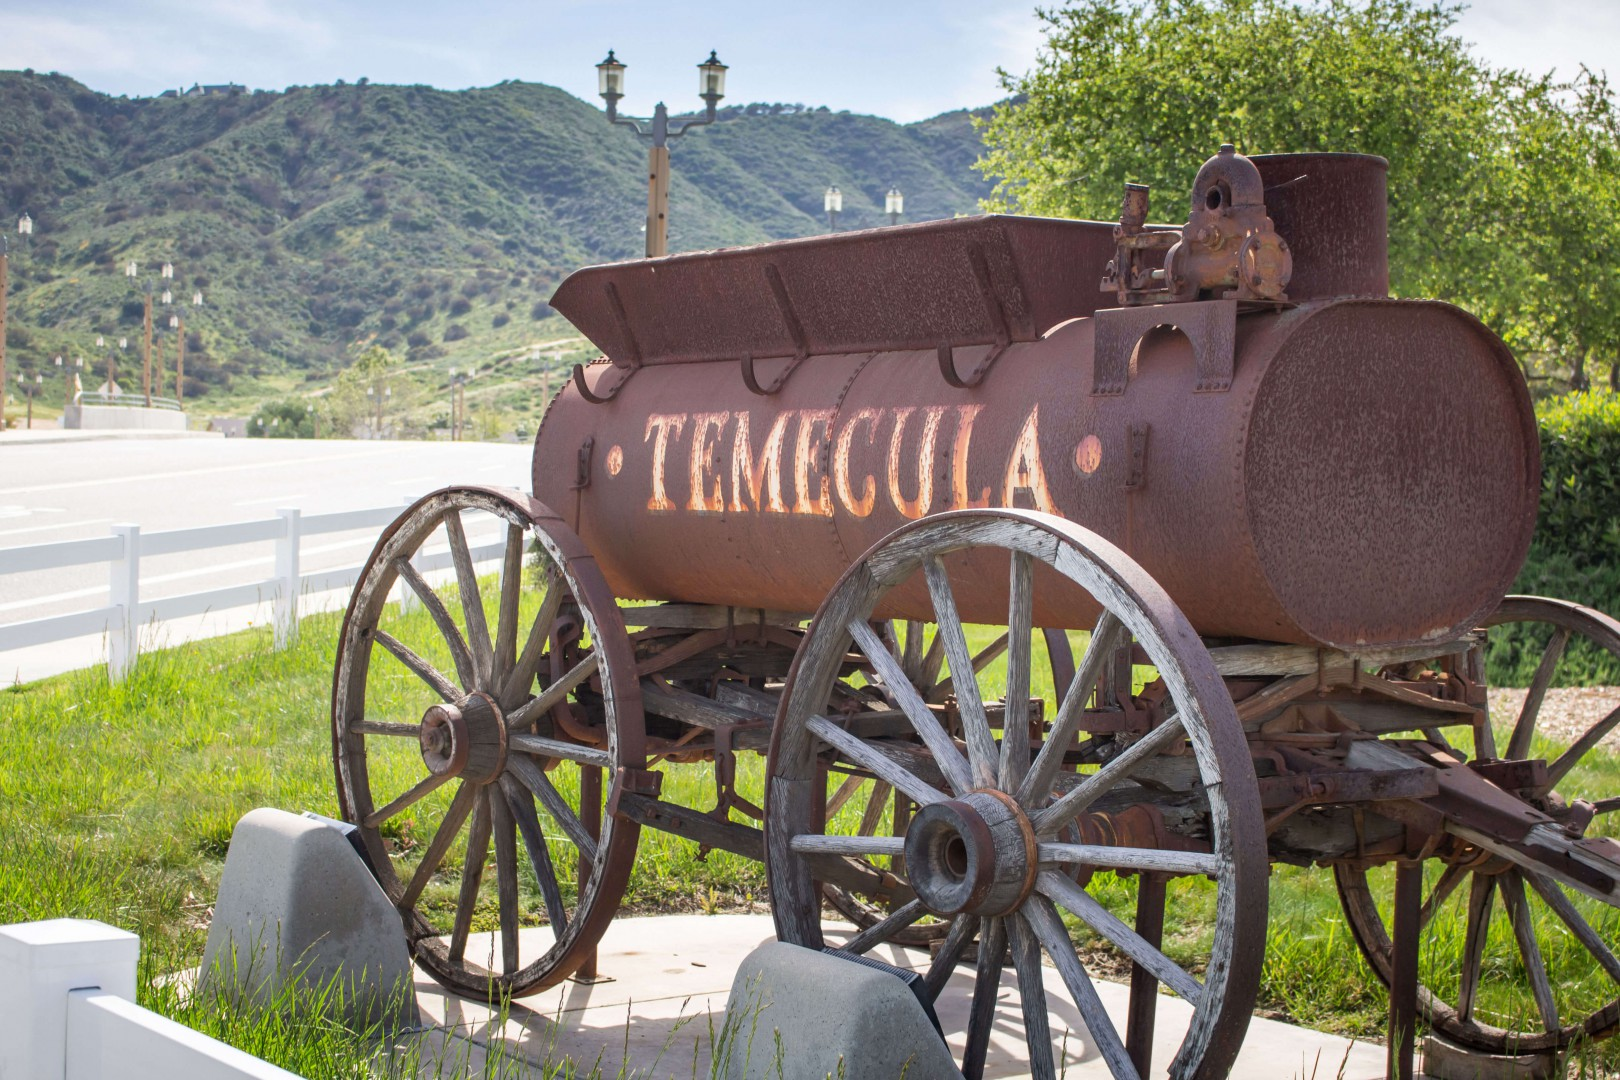 Chariot statue in Temecula County California